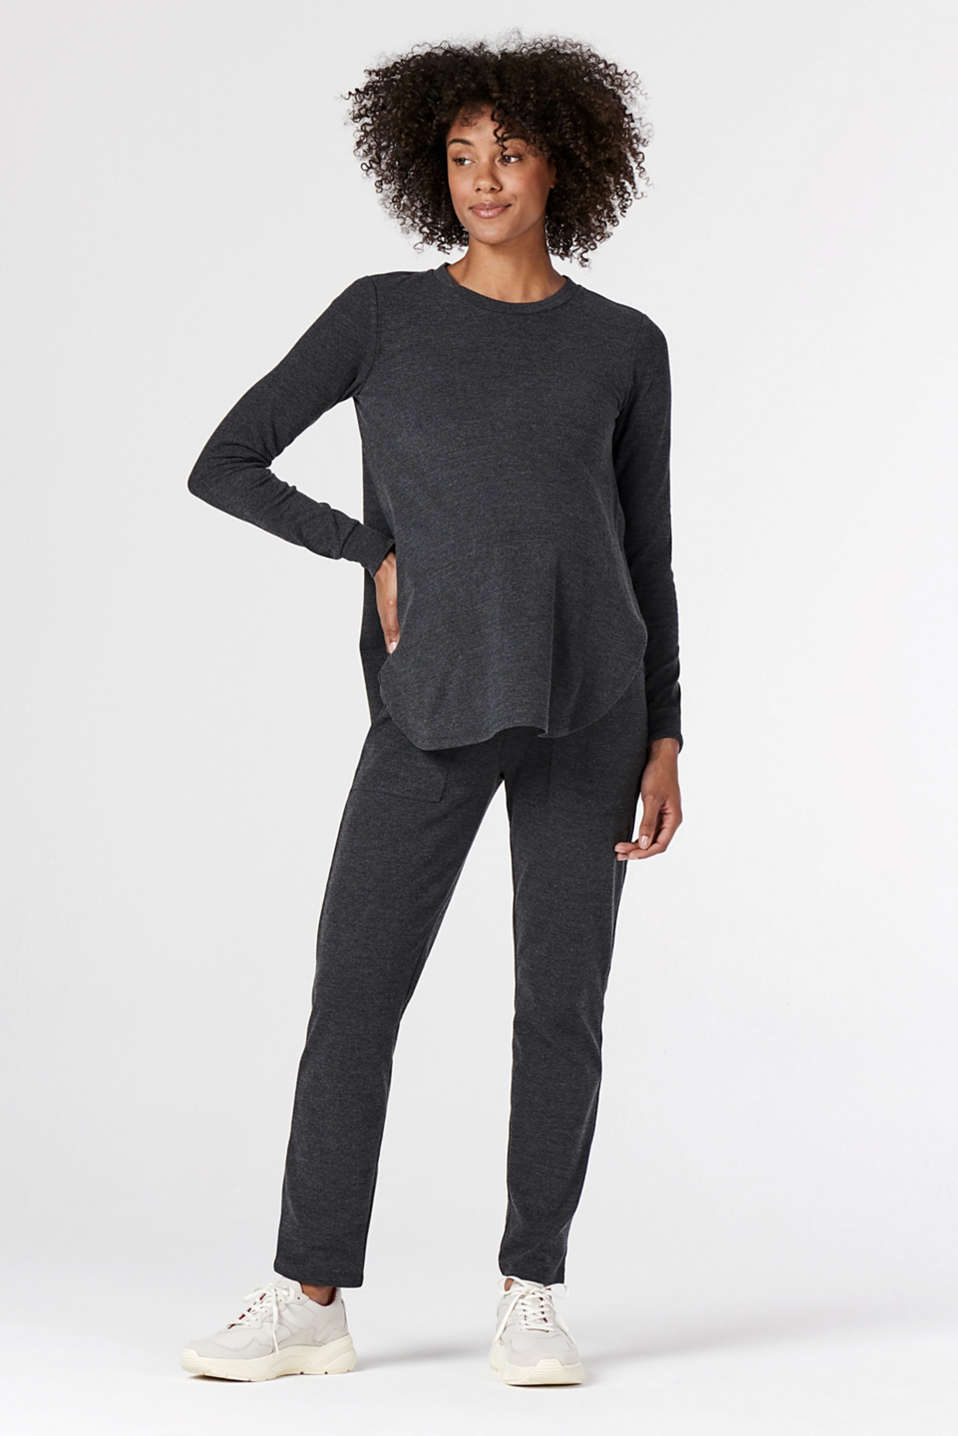 Esprit - Long sleeve top, suitable for breastfeeding